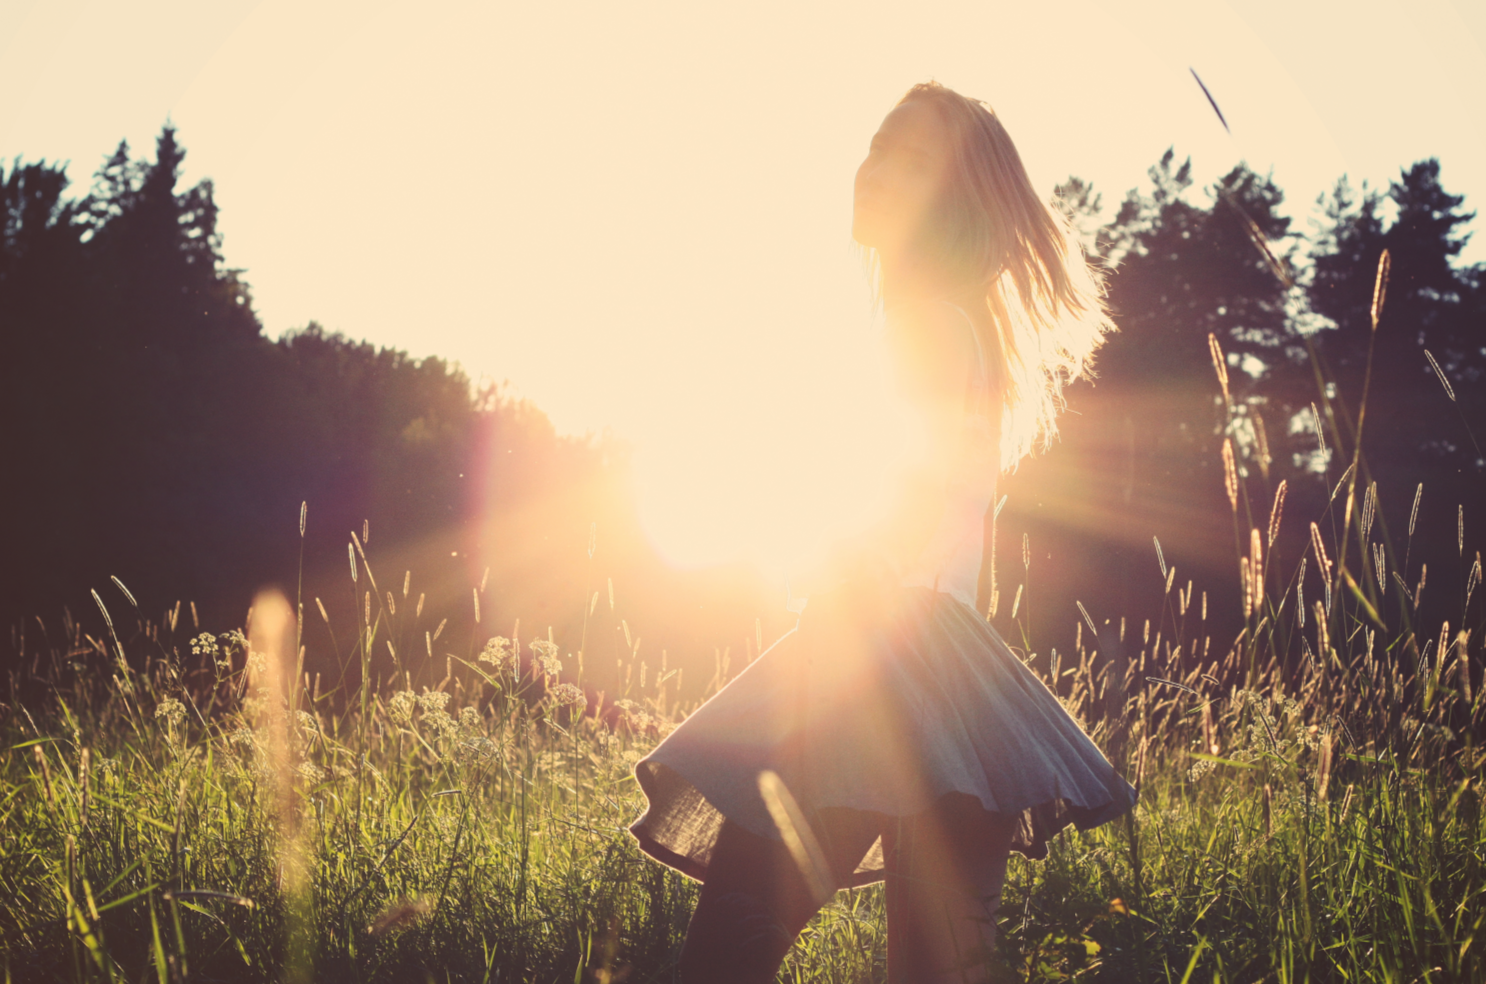 Young girl standing in sun silhouette http://www.topkatsex.com/home